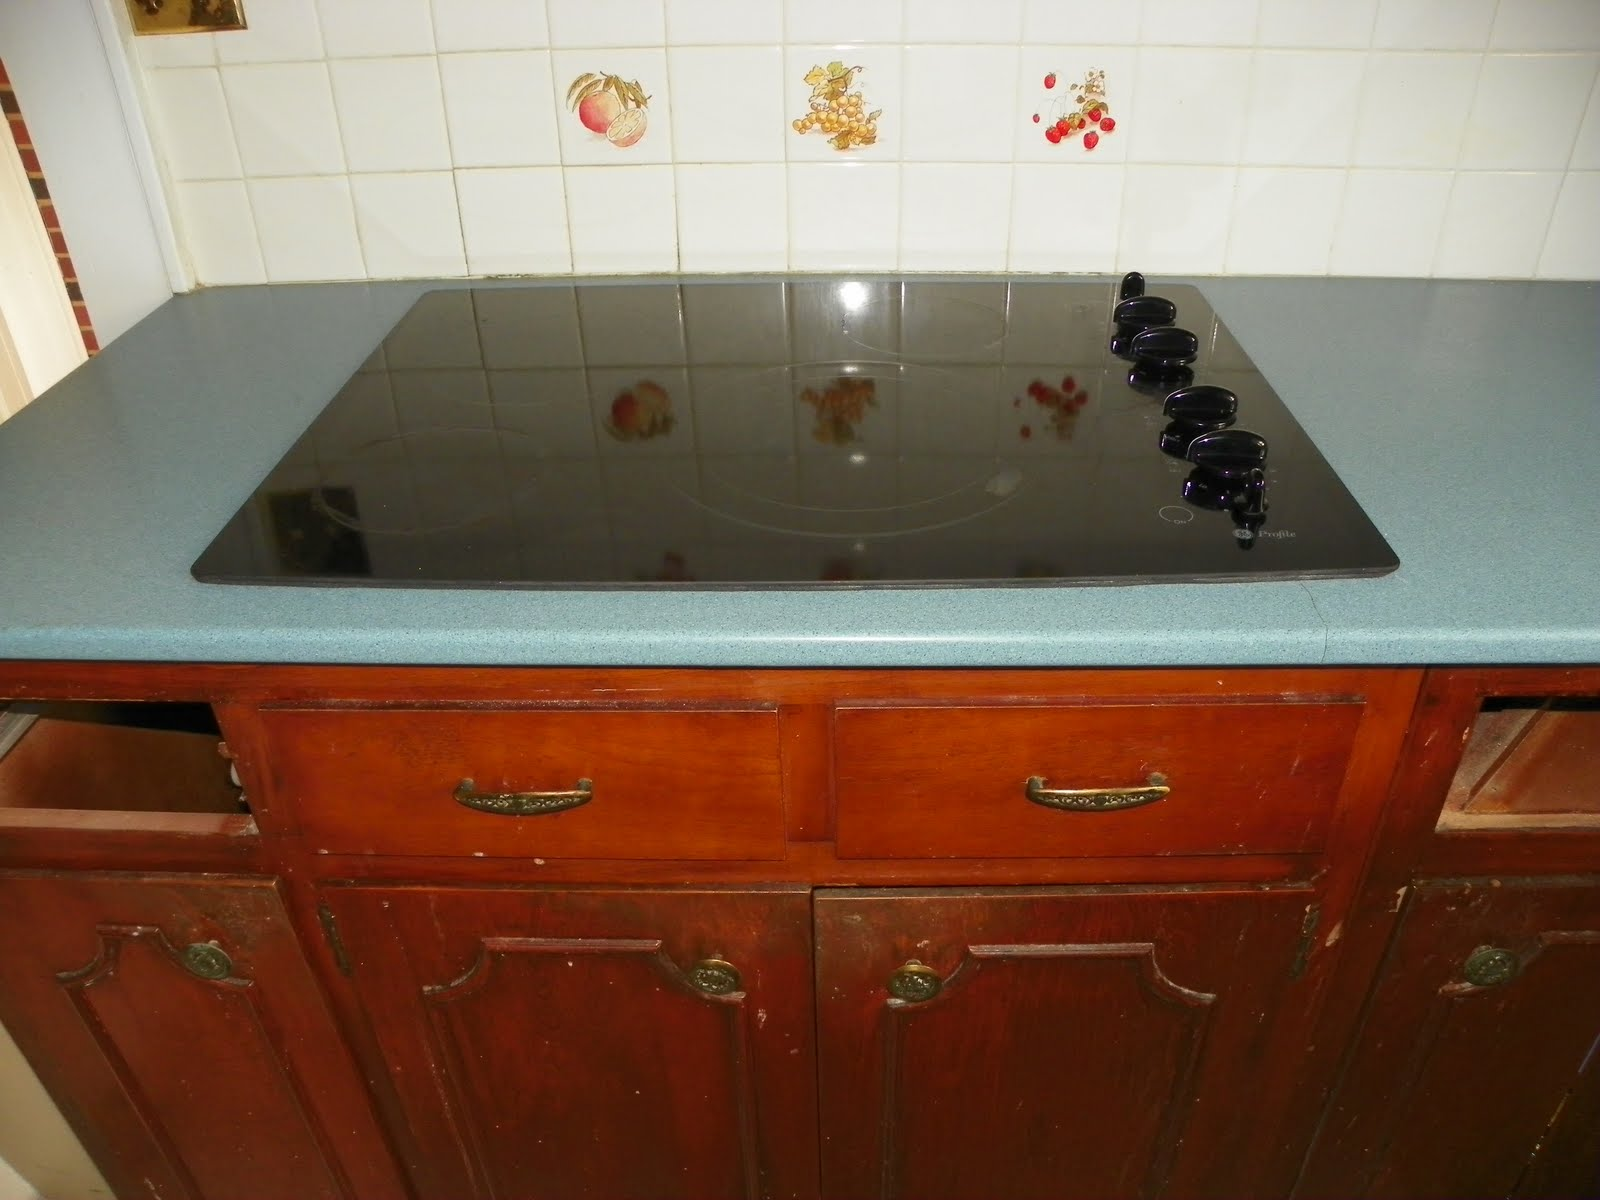 How To Repair Crack In Granite Countertop The Solid Surface And Stone Countertop Repair Blog